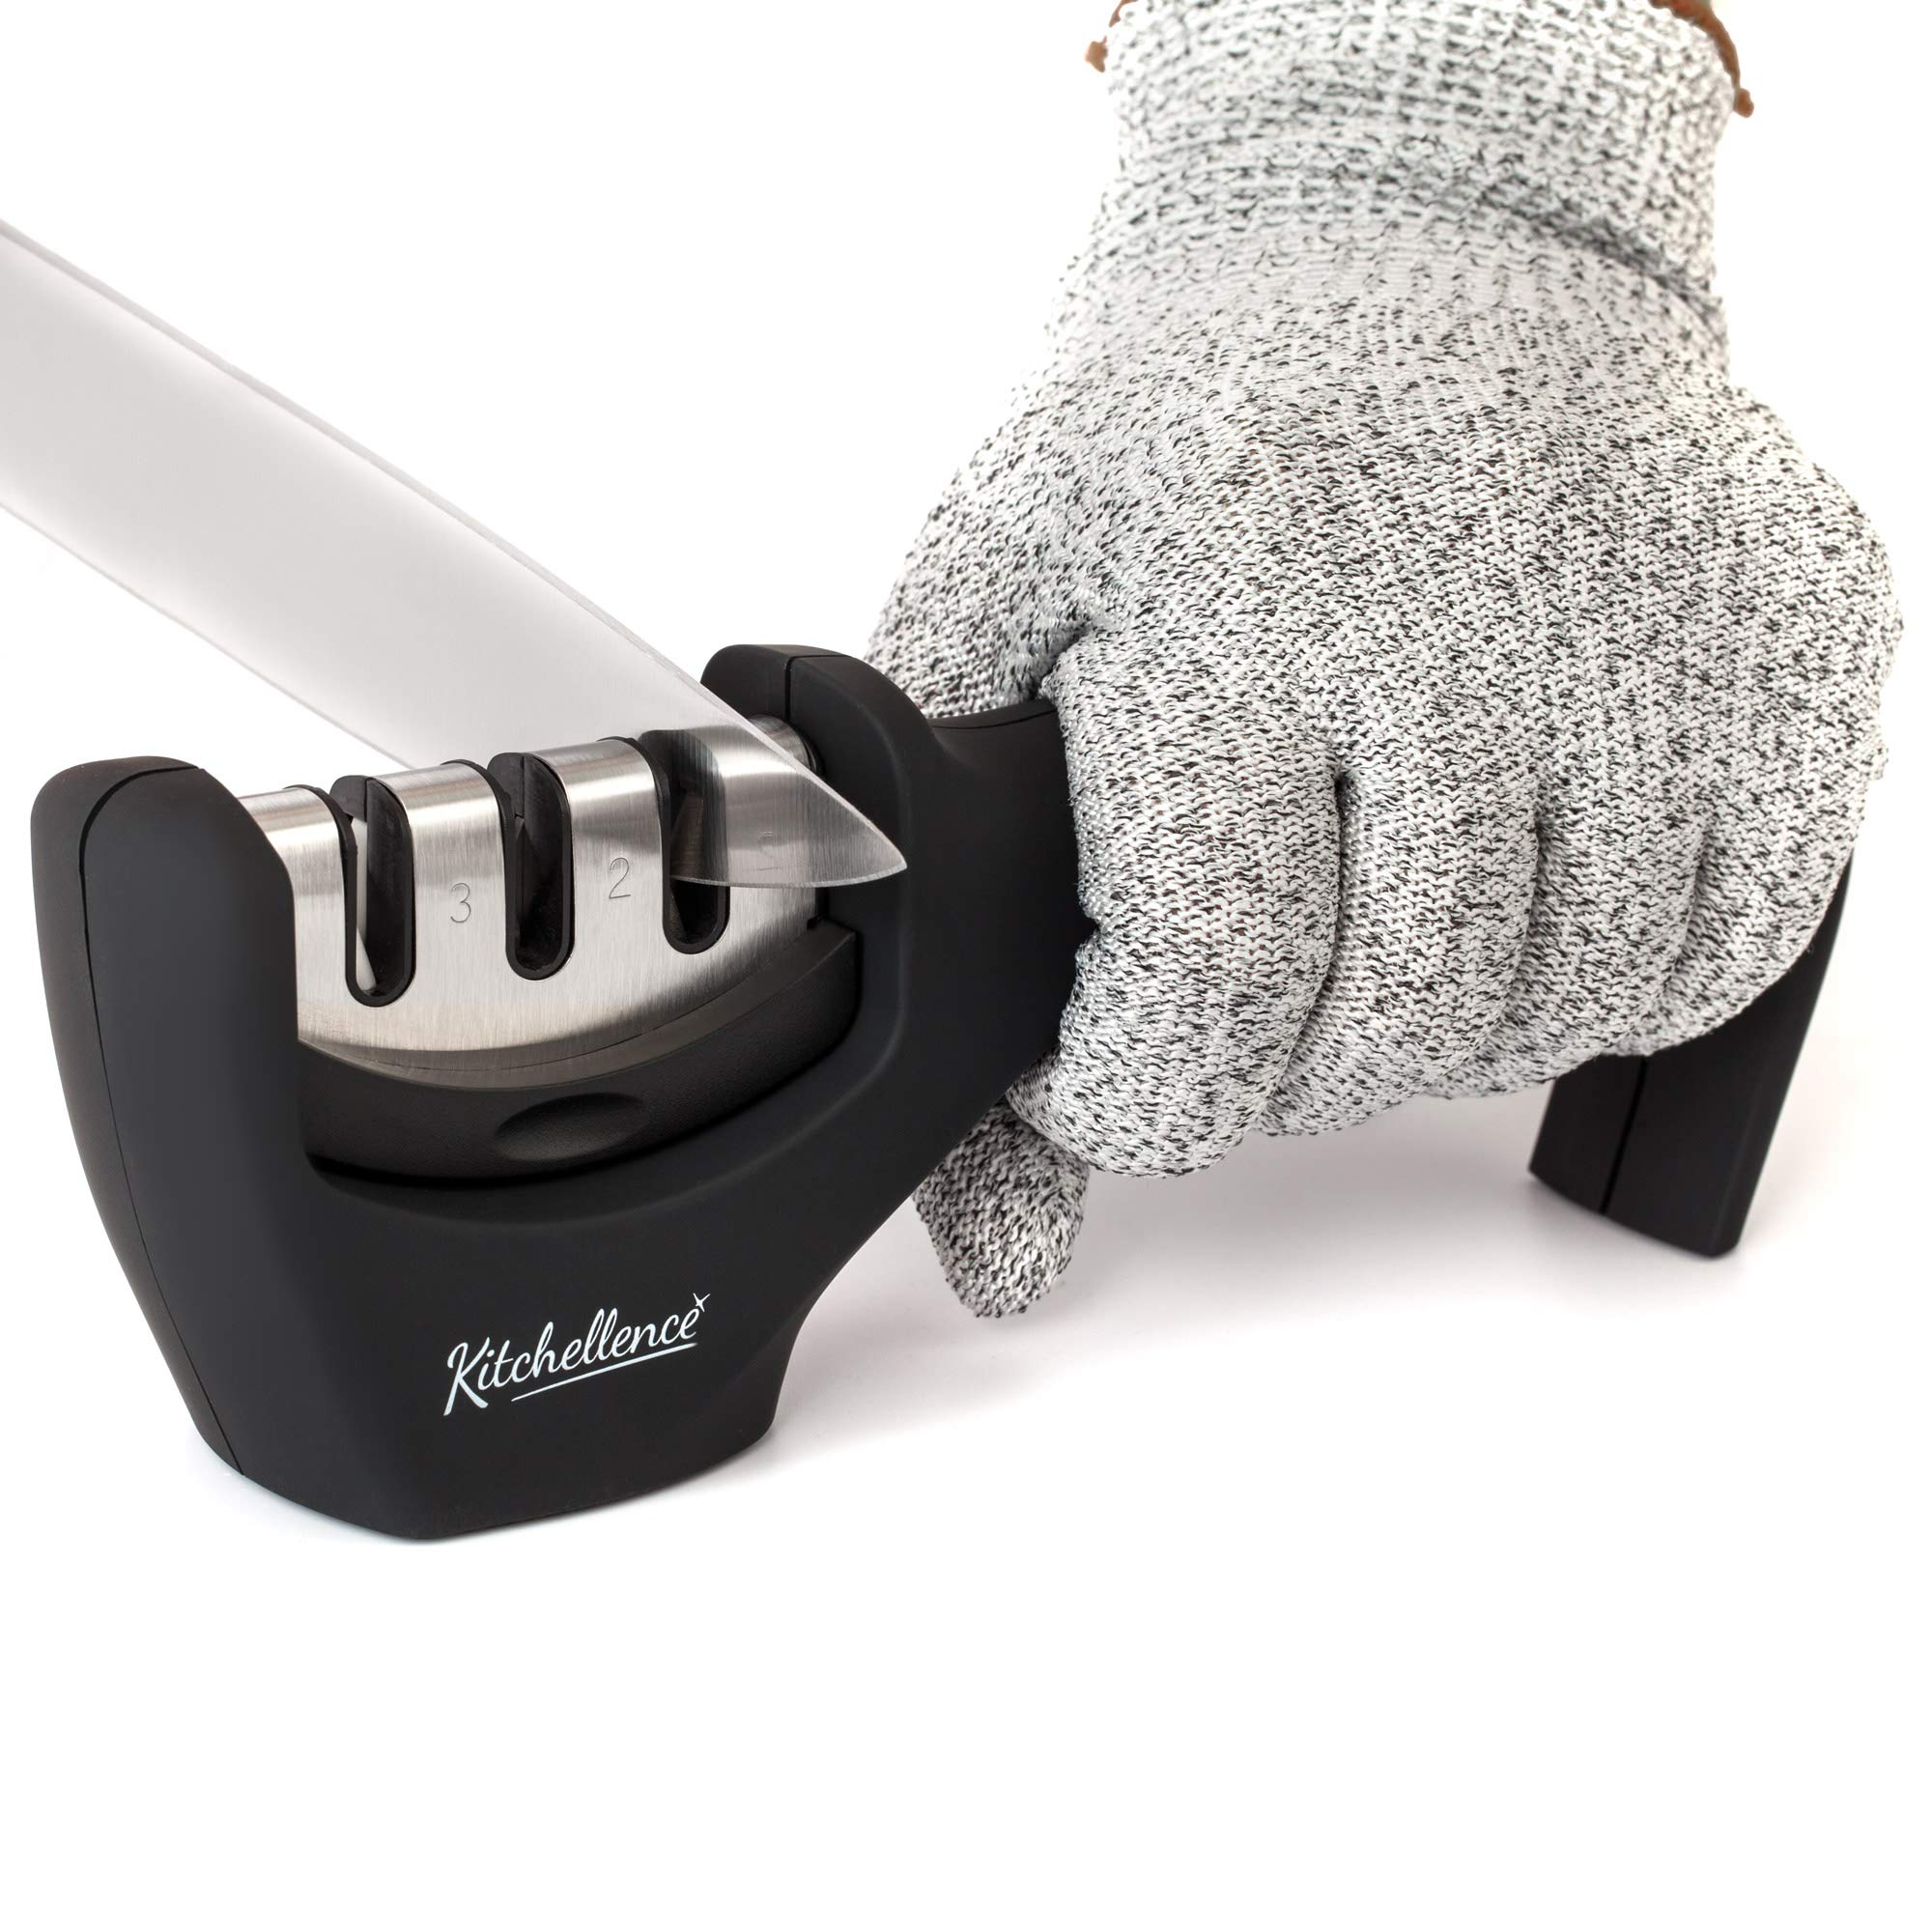 Kitchen Knife Sharpener - 3-Stage Knife Sharpening Tool Helps Repair, Restore and Polish Blades - Cut-Resistant Glove Included (Black) by Kitchellence